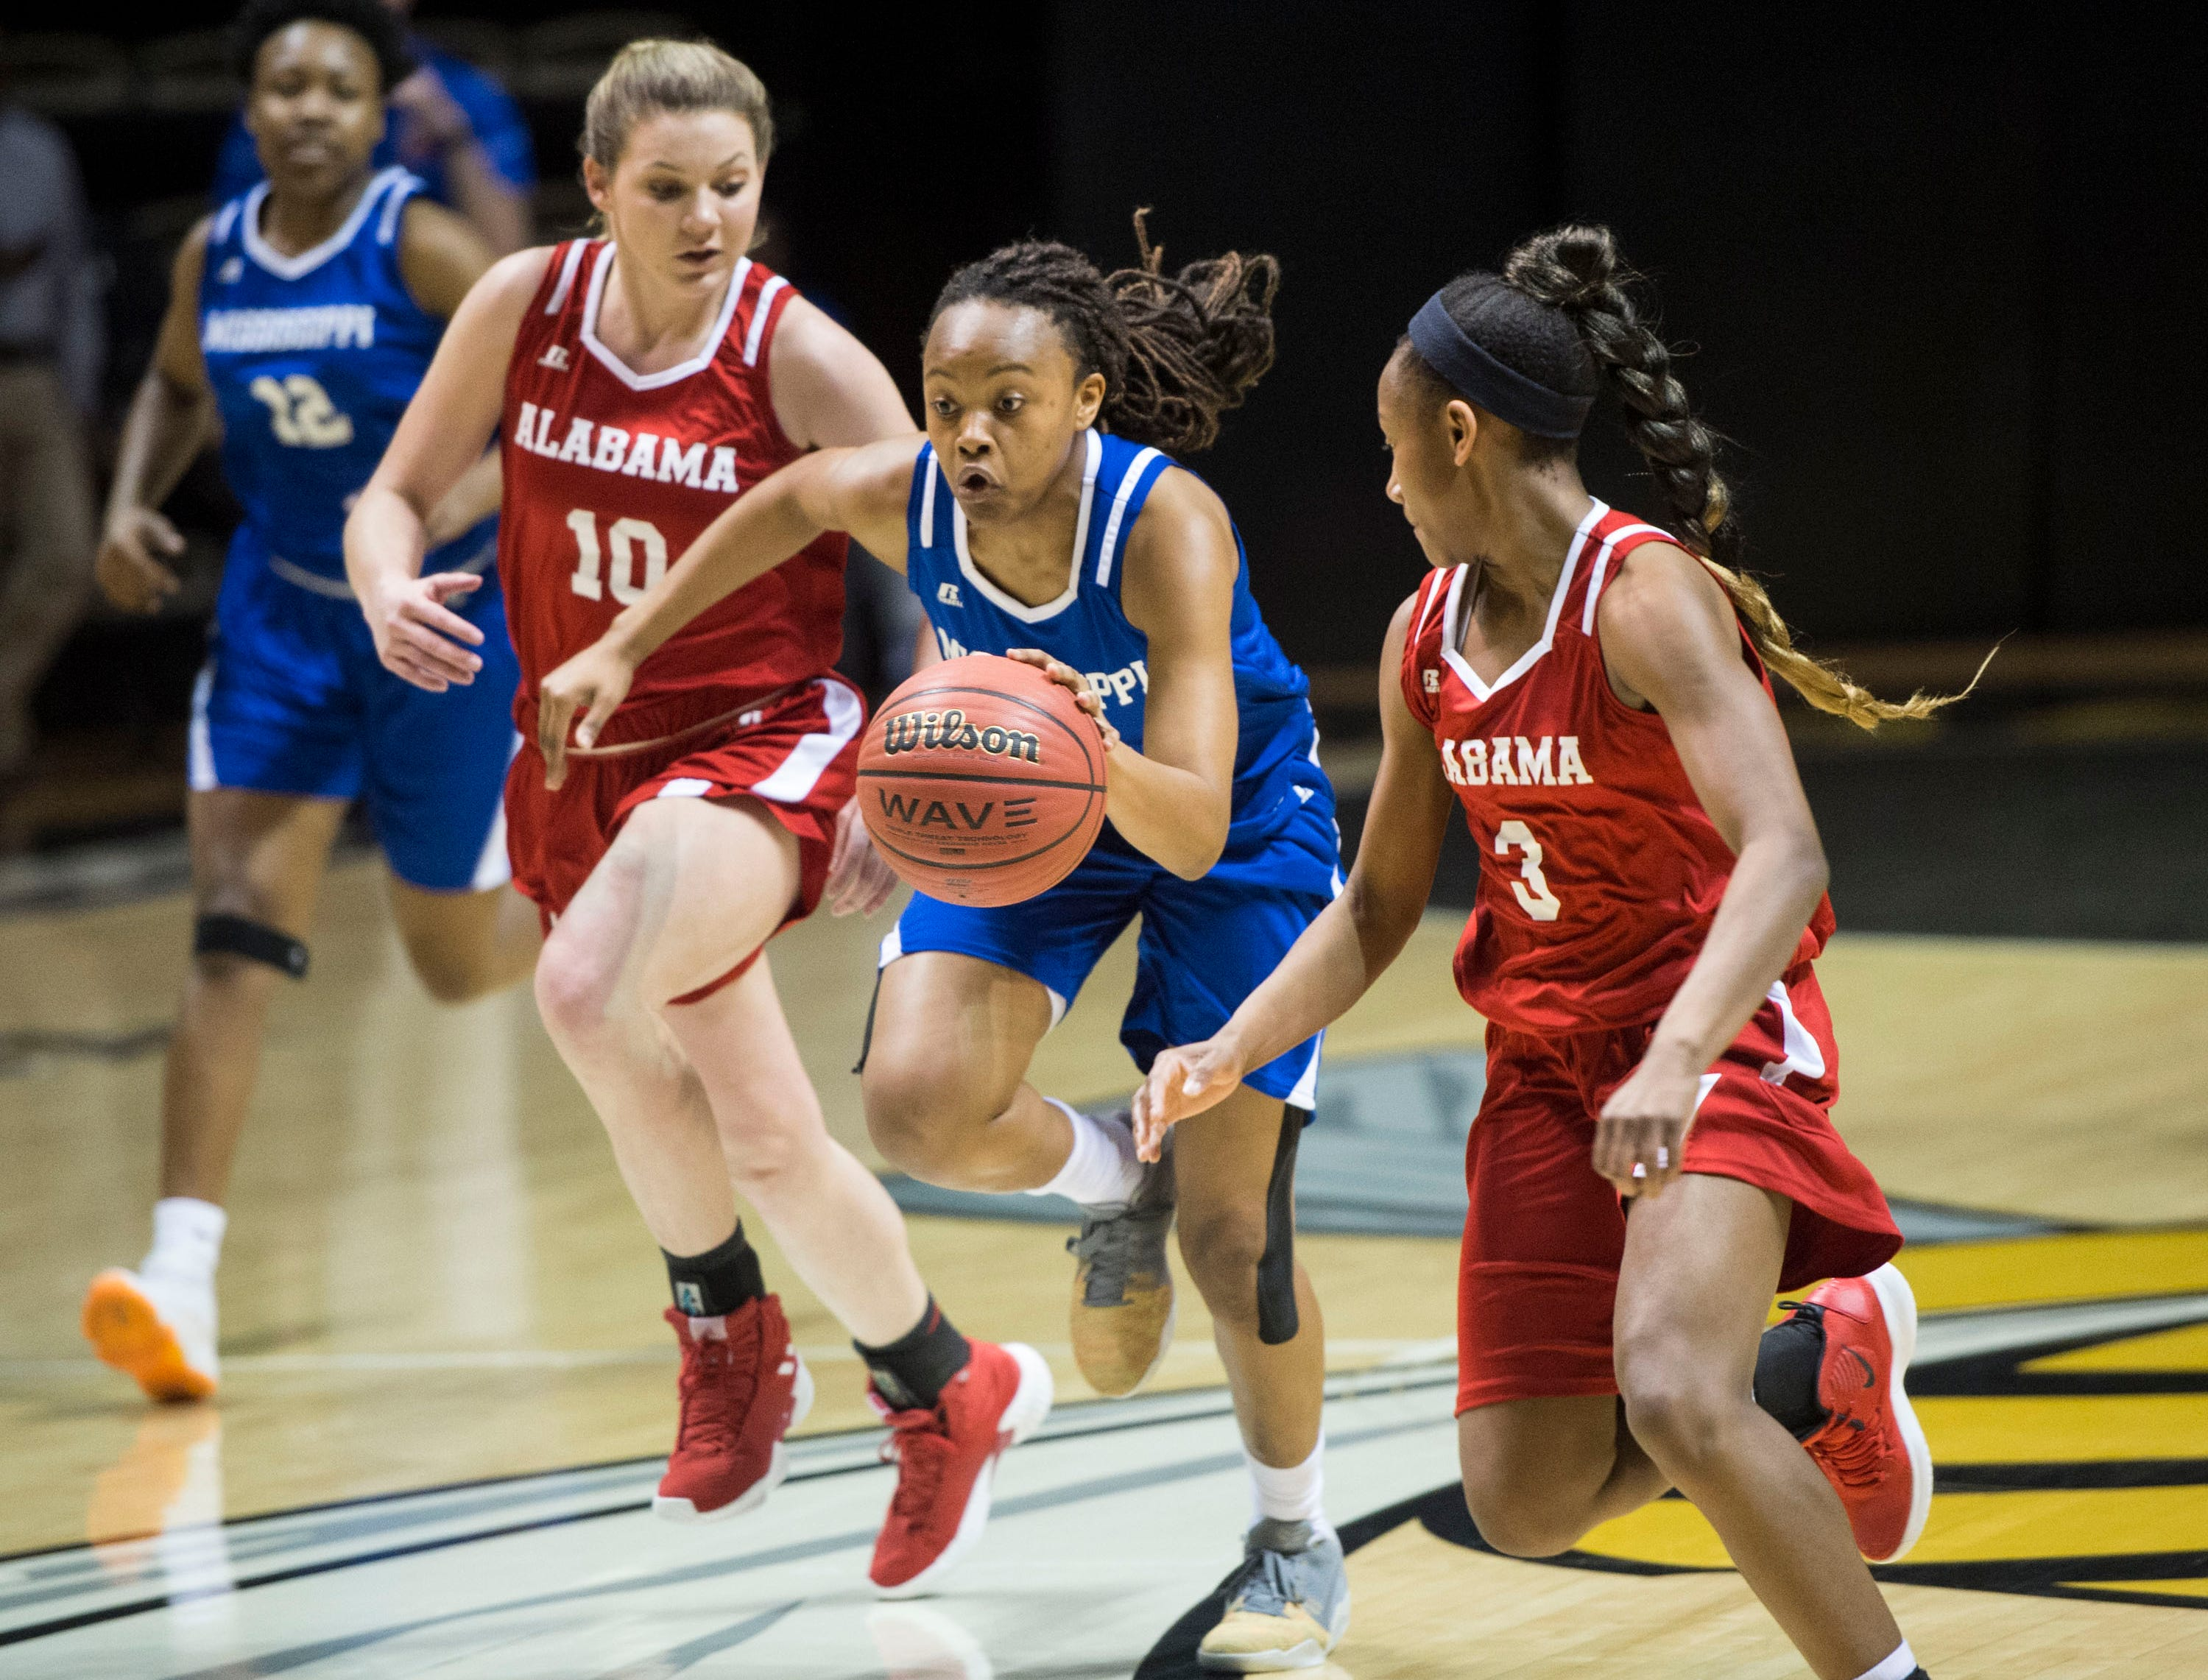 Mississippi's Jalisa Outlaw (11) drives the ball down the court during the Alabama-Mississippi All-Star game at the Dunn-Oliver Acadome in Montgomery, Ala., on Friday, March 15, 2019. Alabama All-stars lead the Mississippi All-stars 48-34 at halftime.